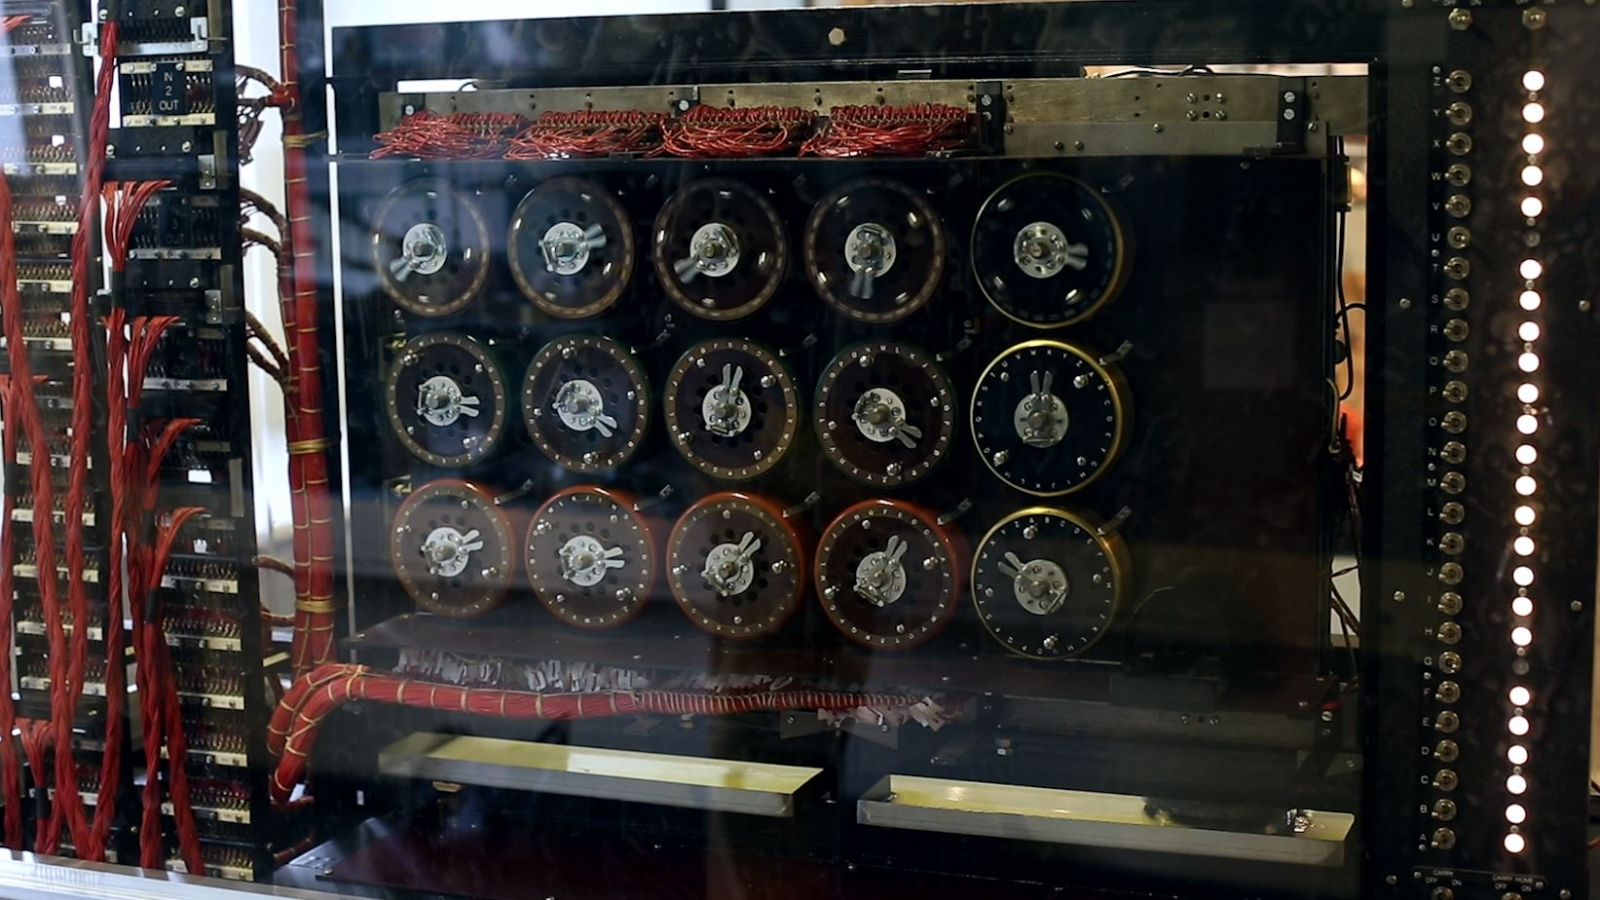 Inside Bletchley Park: Where Alan Turing Cracked the Enigma Machine